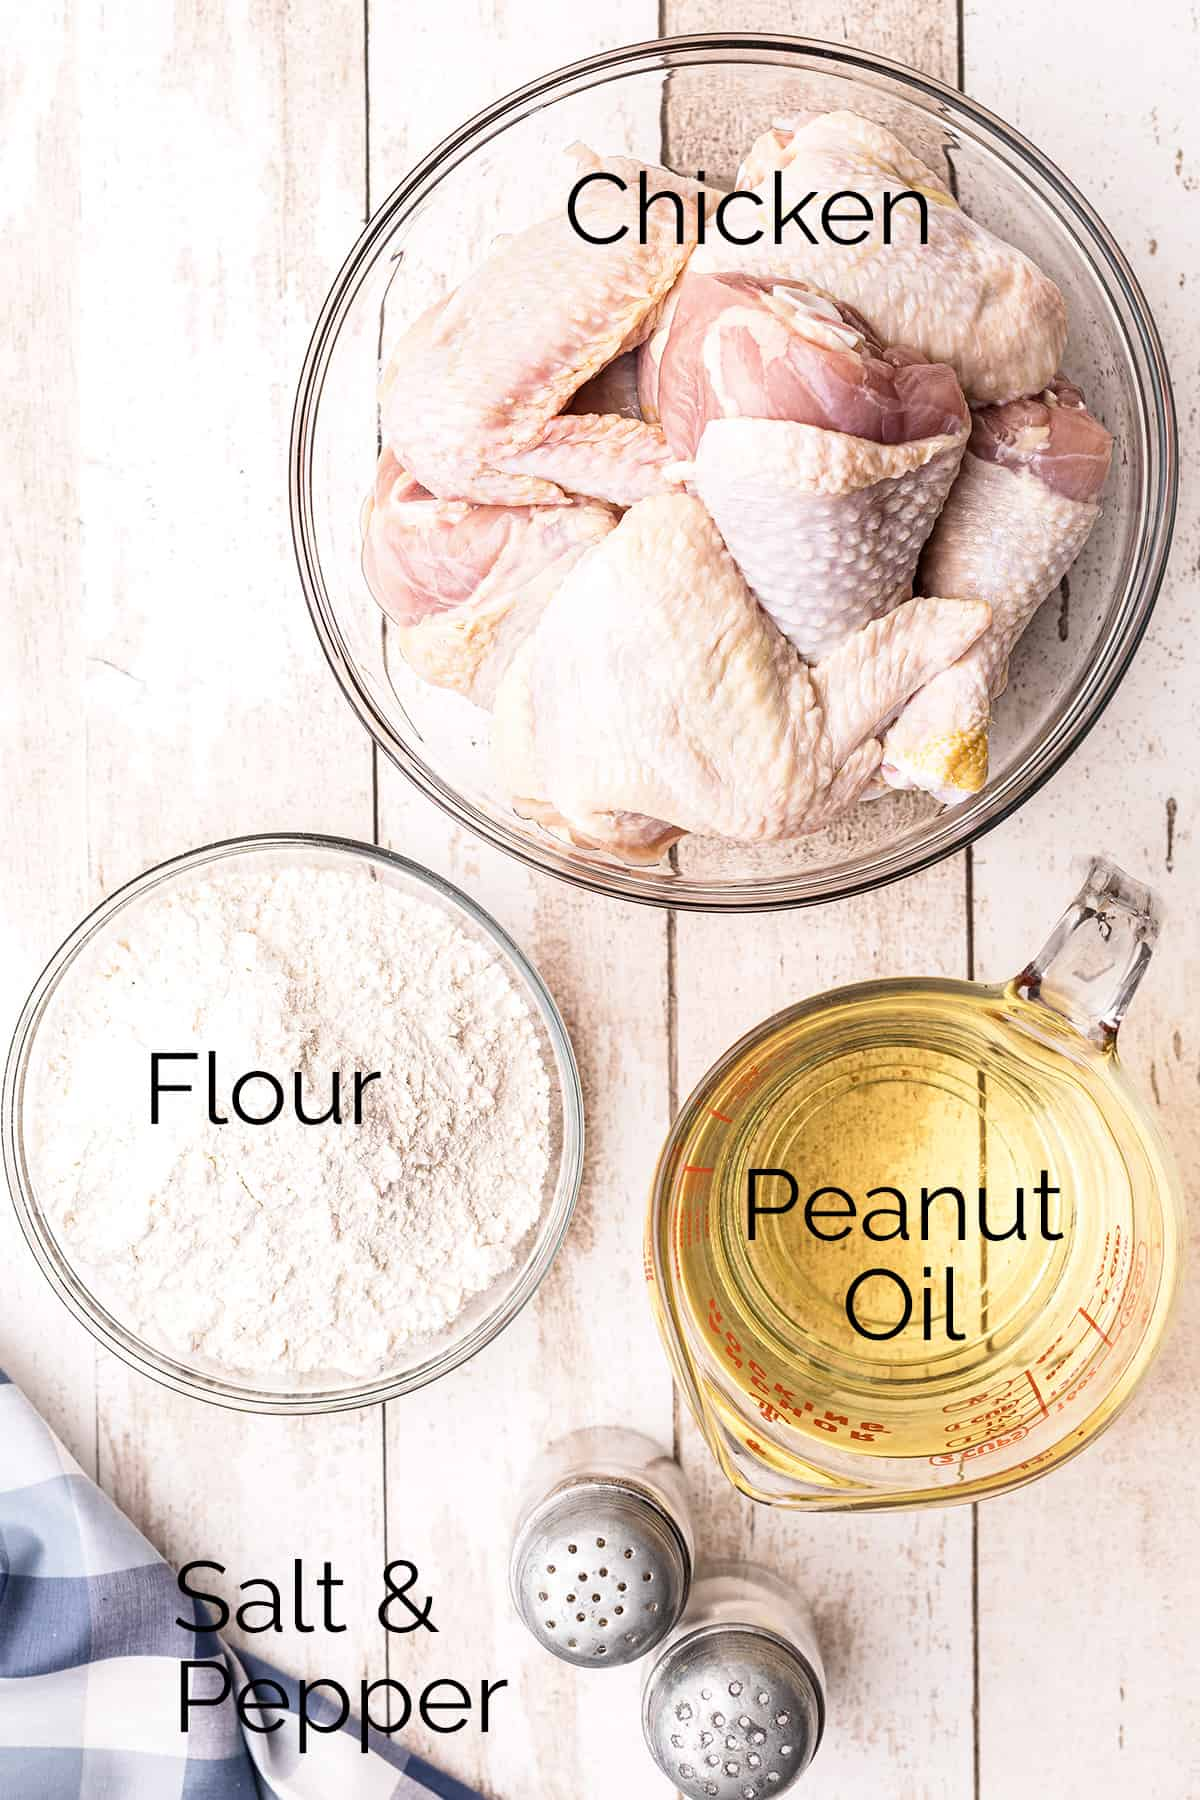 Ingredients needed for the recipe: chicken, flour, peanut oil, salt and pepper.